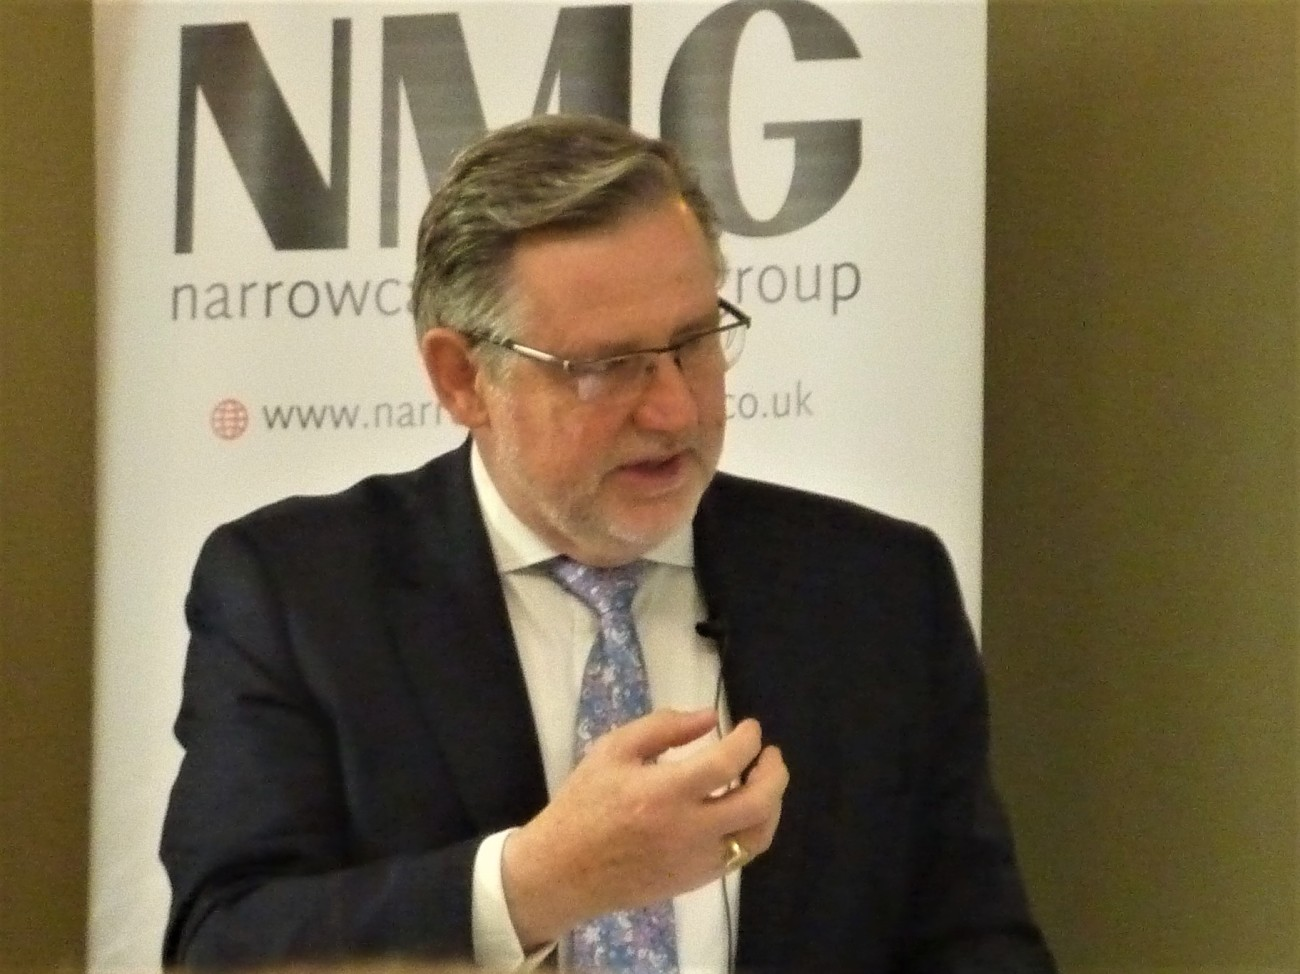 190922 Barry Gardiner MP